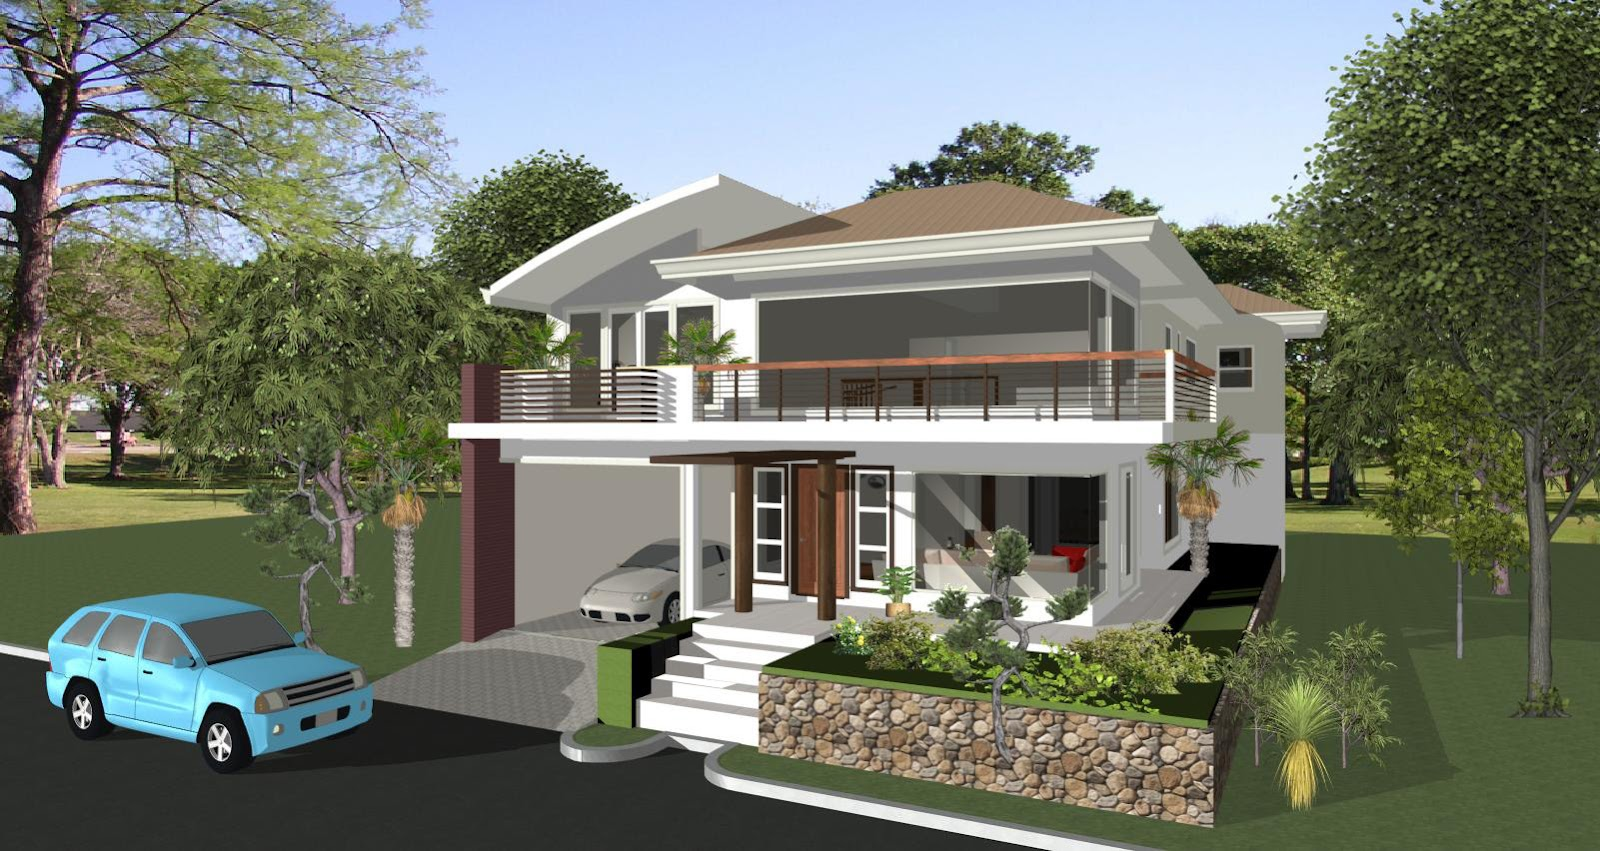 House designs in the philippines in iloilo by erecre group for Homes models and plans